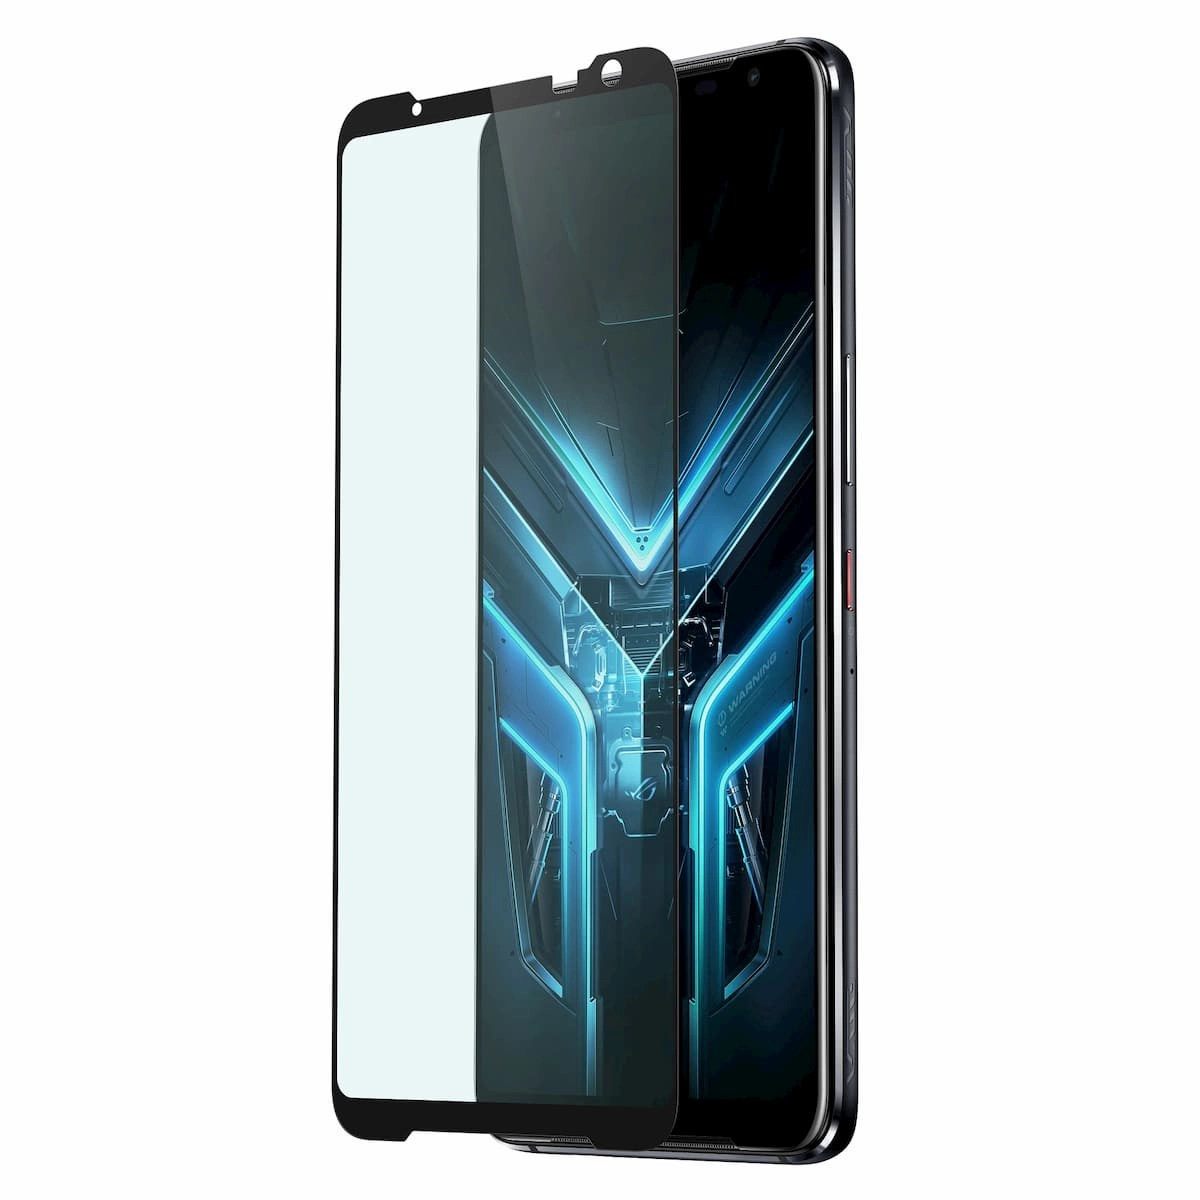 ROG Phone 3 Glass Screen Protector / Antibacterial Glass Screen Protector